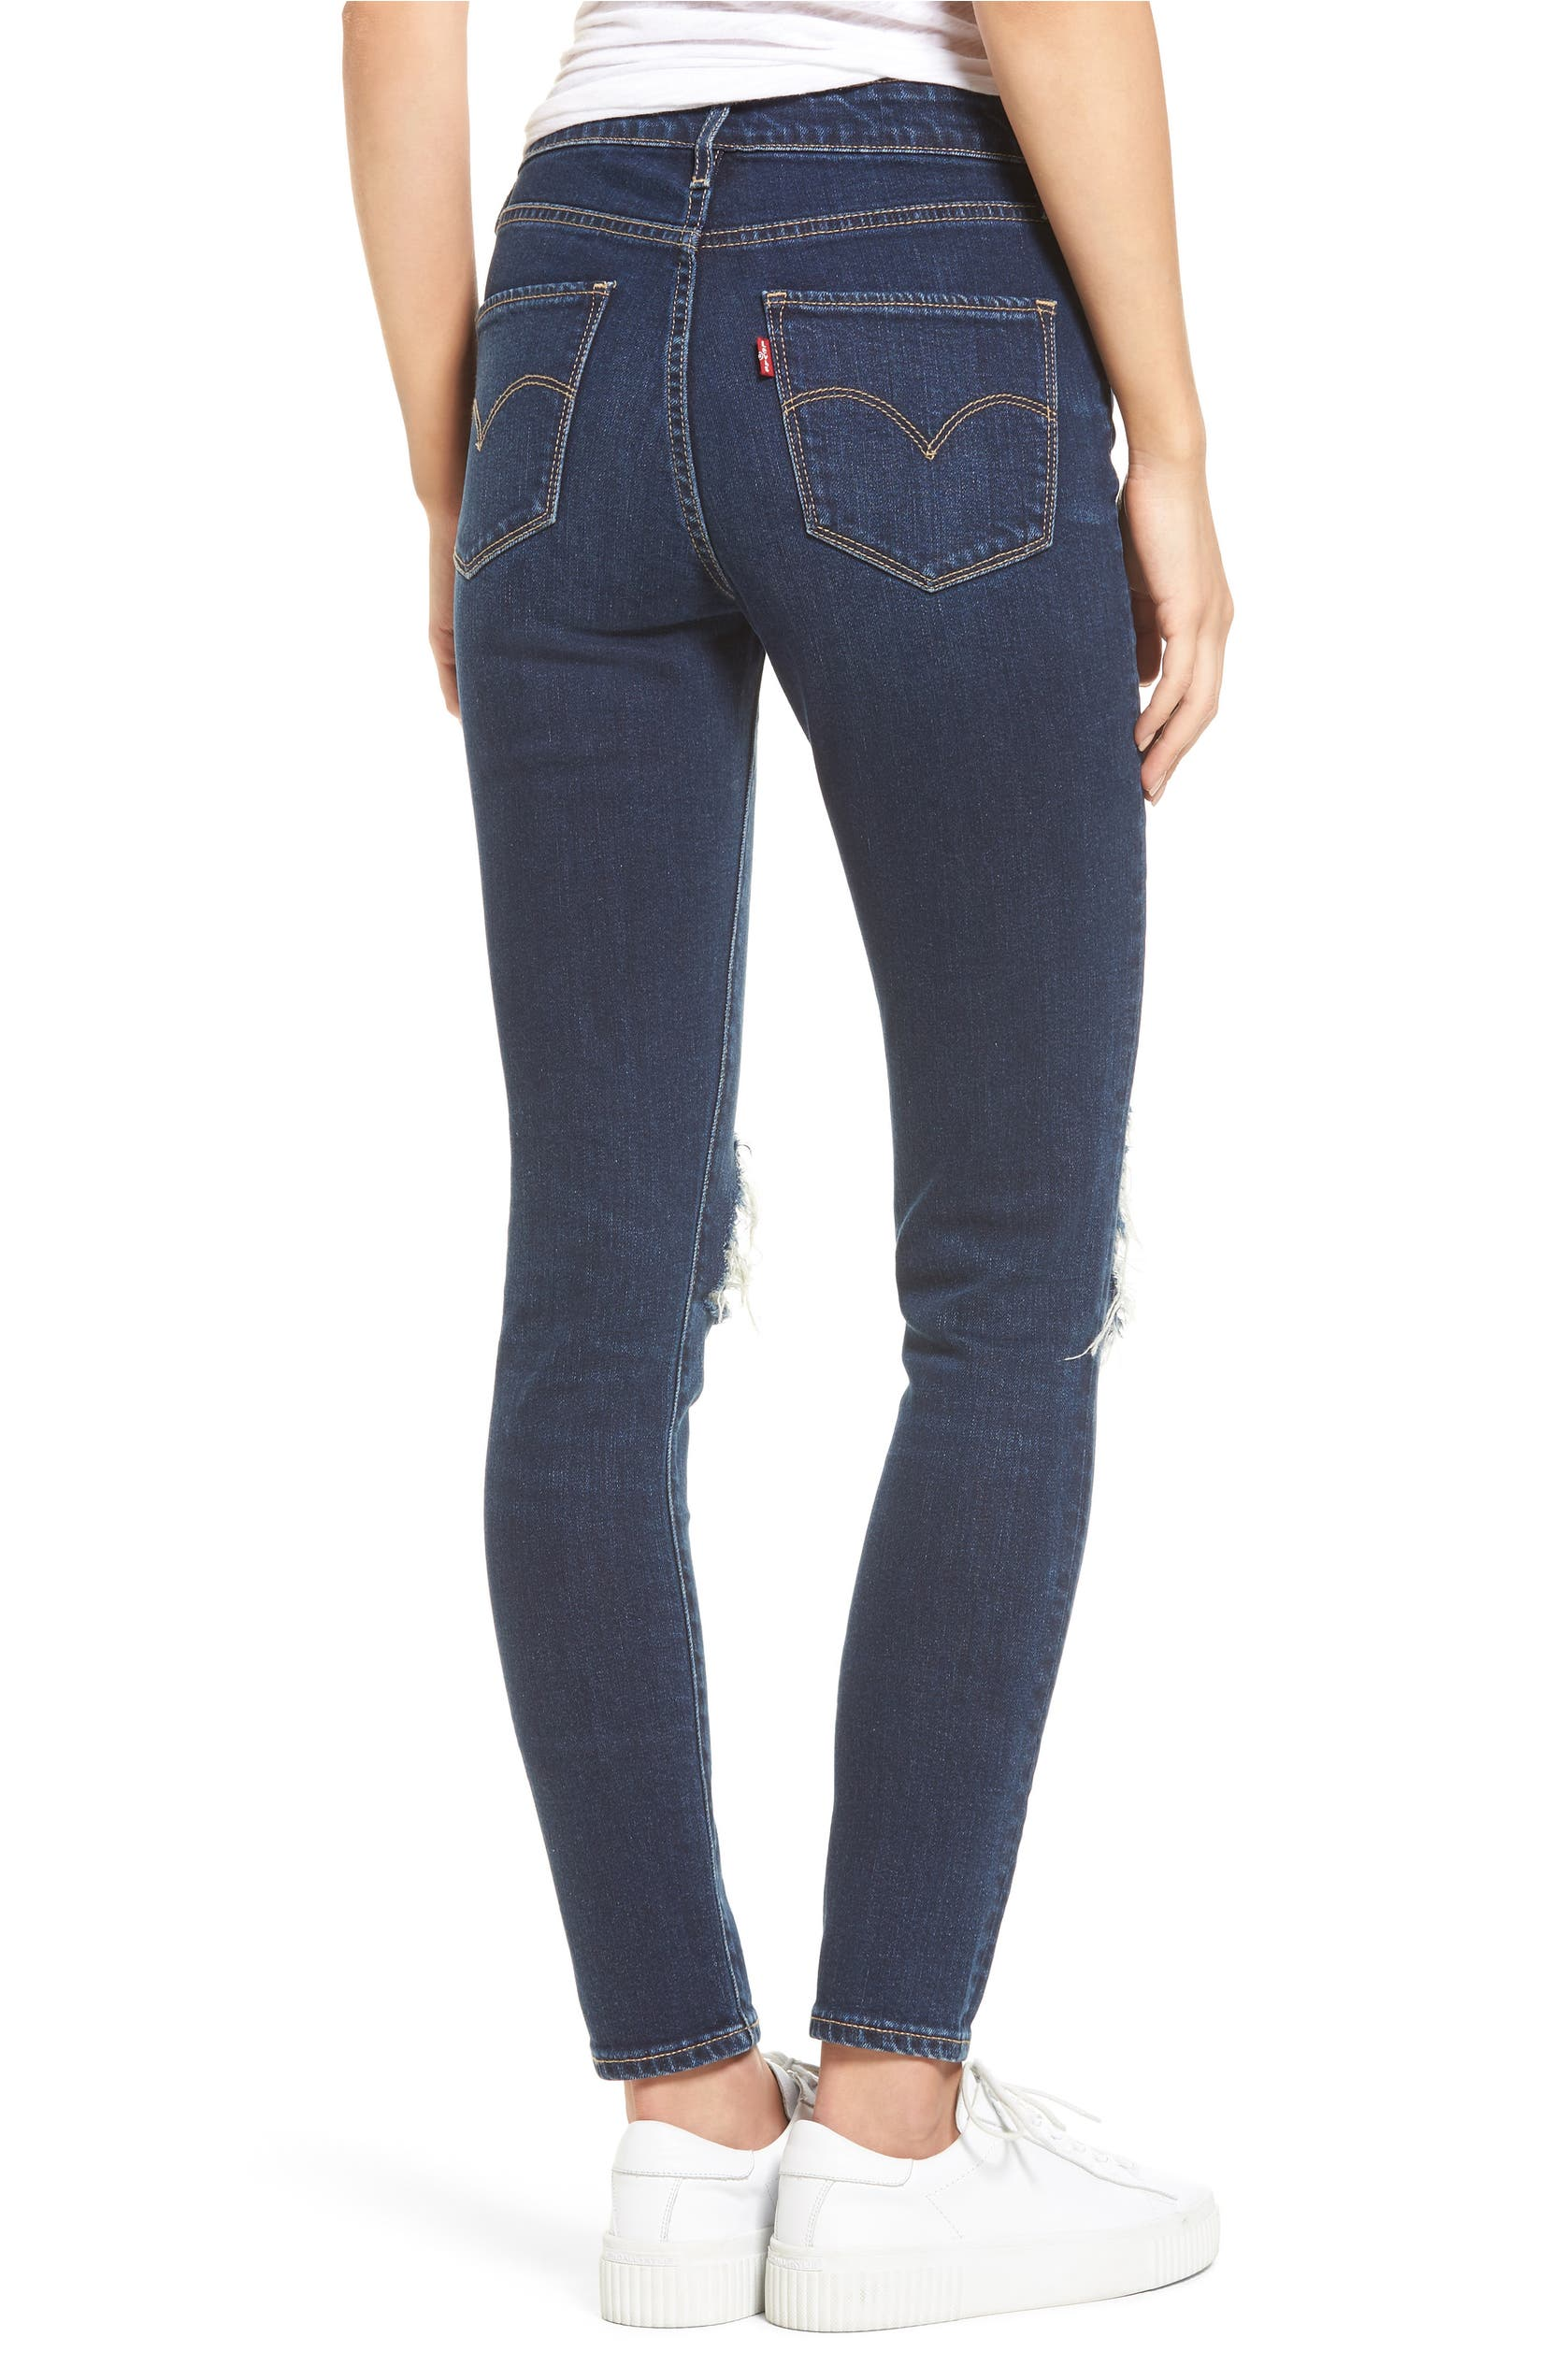 color brilliancy factory price moderate price 721 Ripped High Waist Skinny Jeans